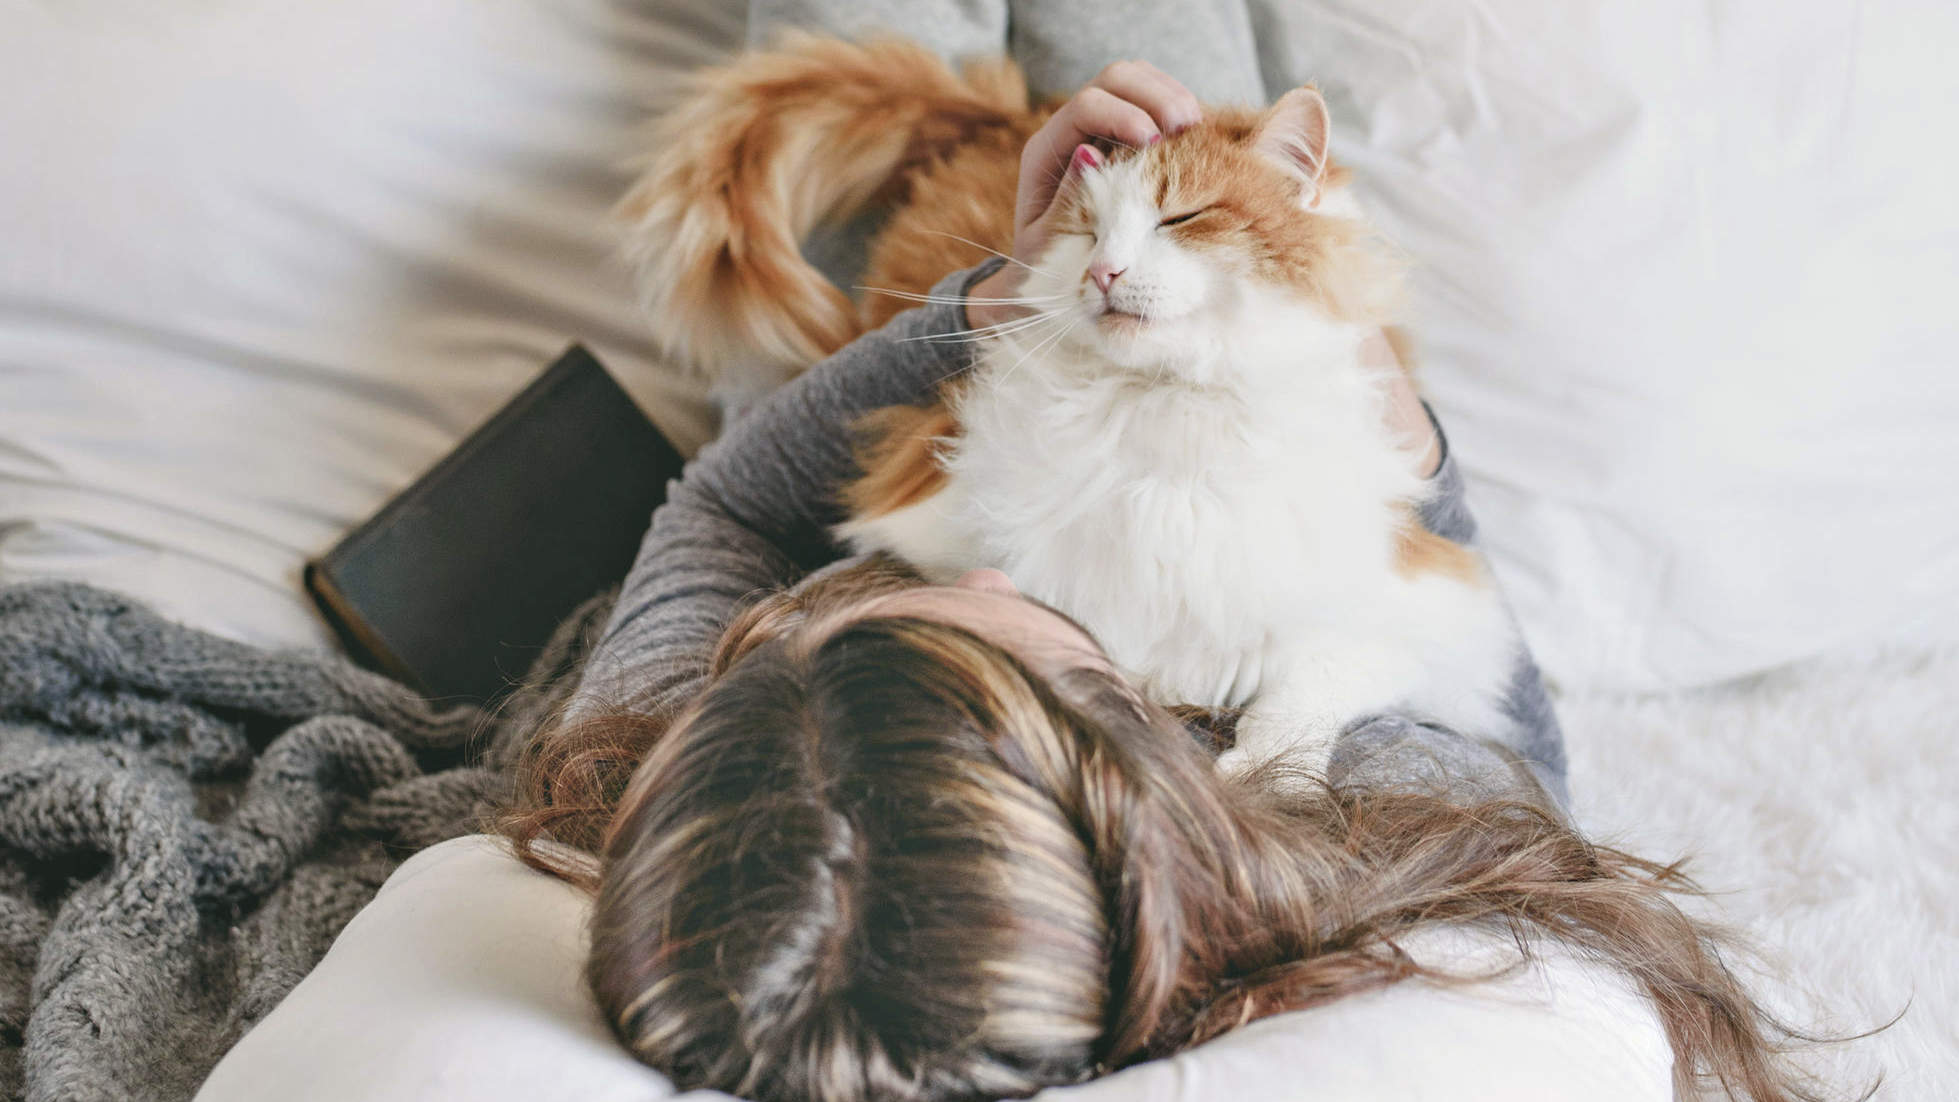 Do You Need an Emotional Support Animal? Here's What to Know